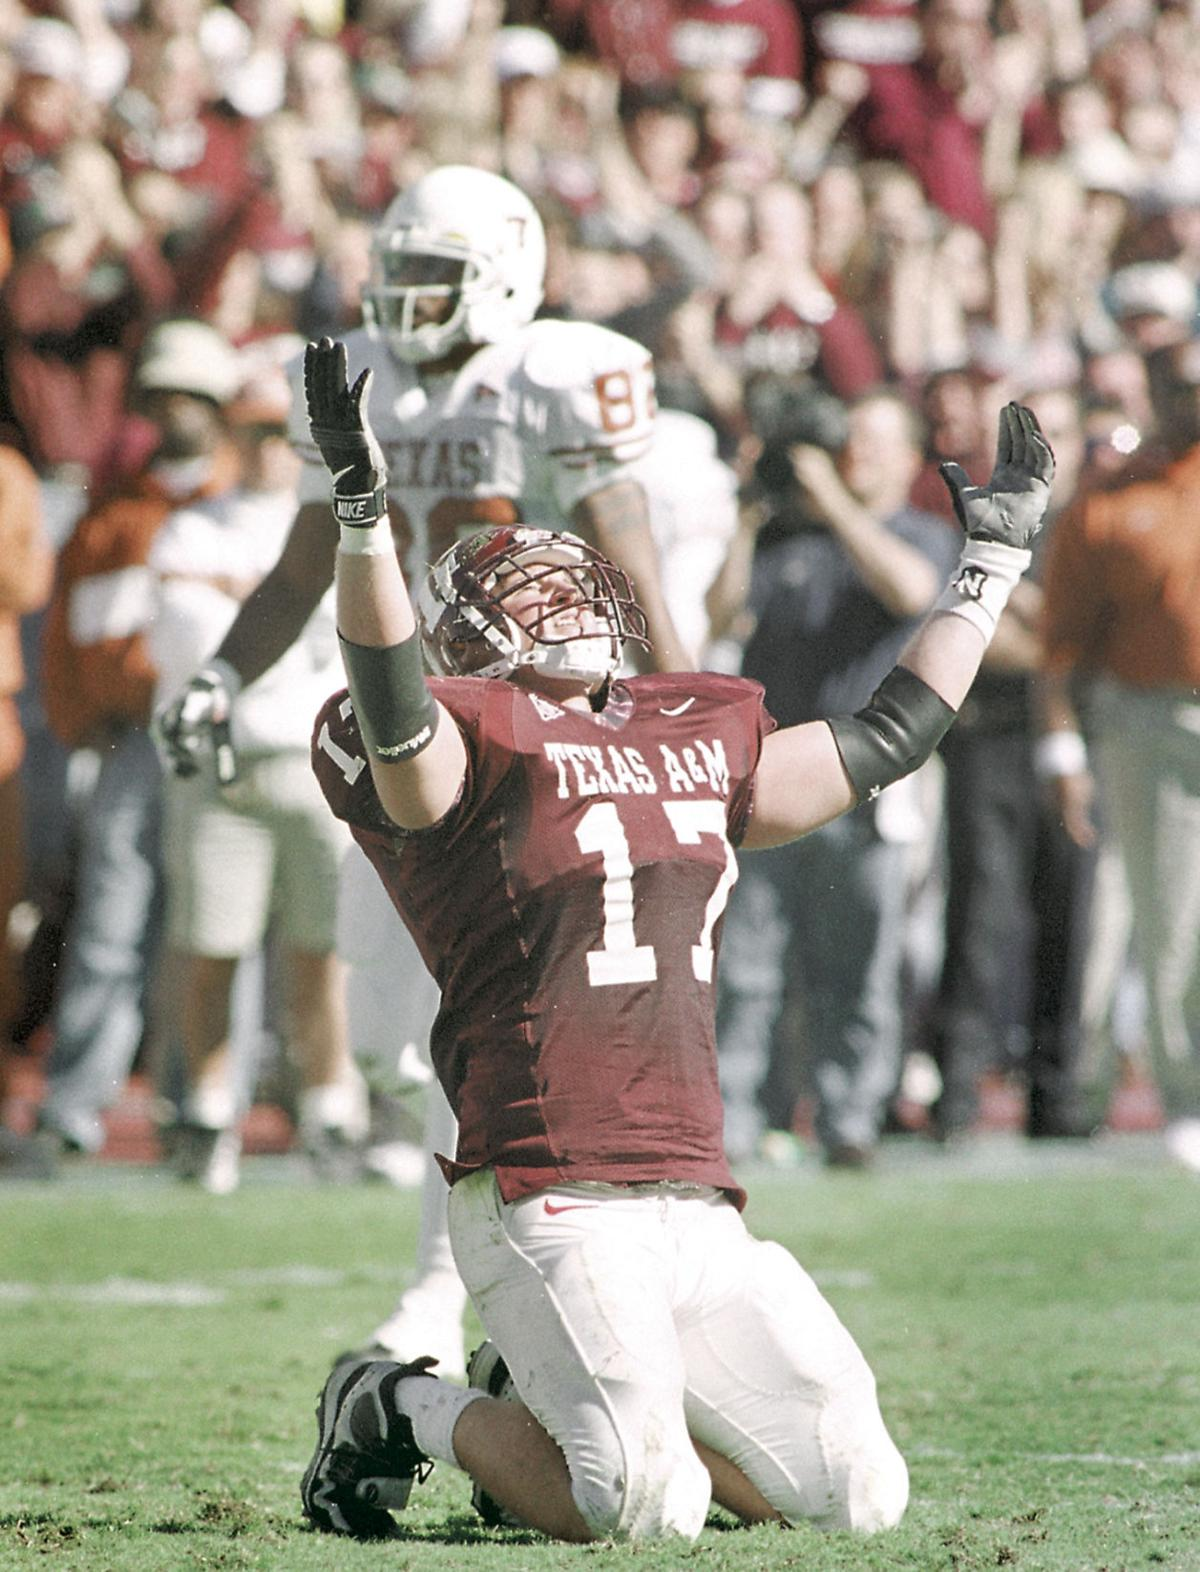 Texas A&M vs. University of Texas, Nov. 26, 1999